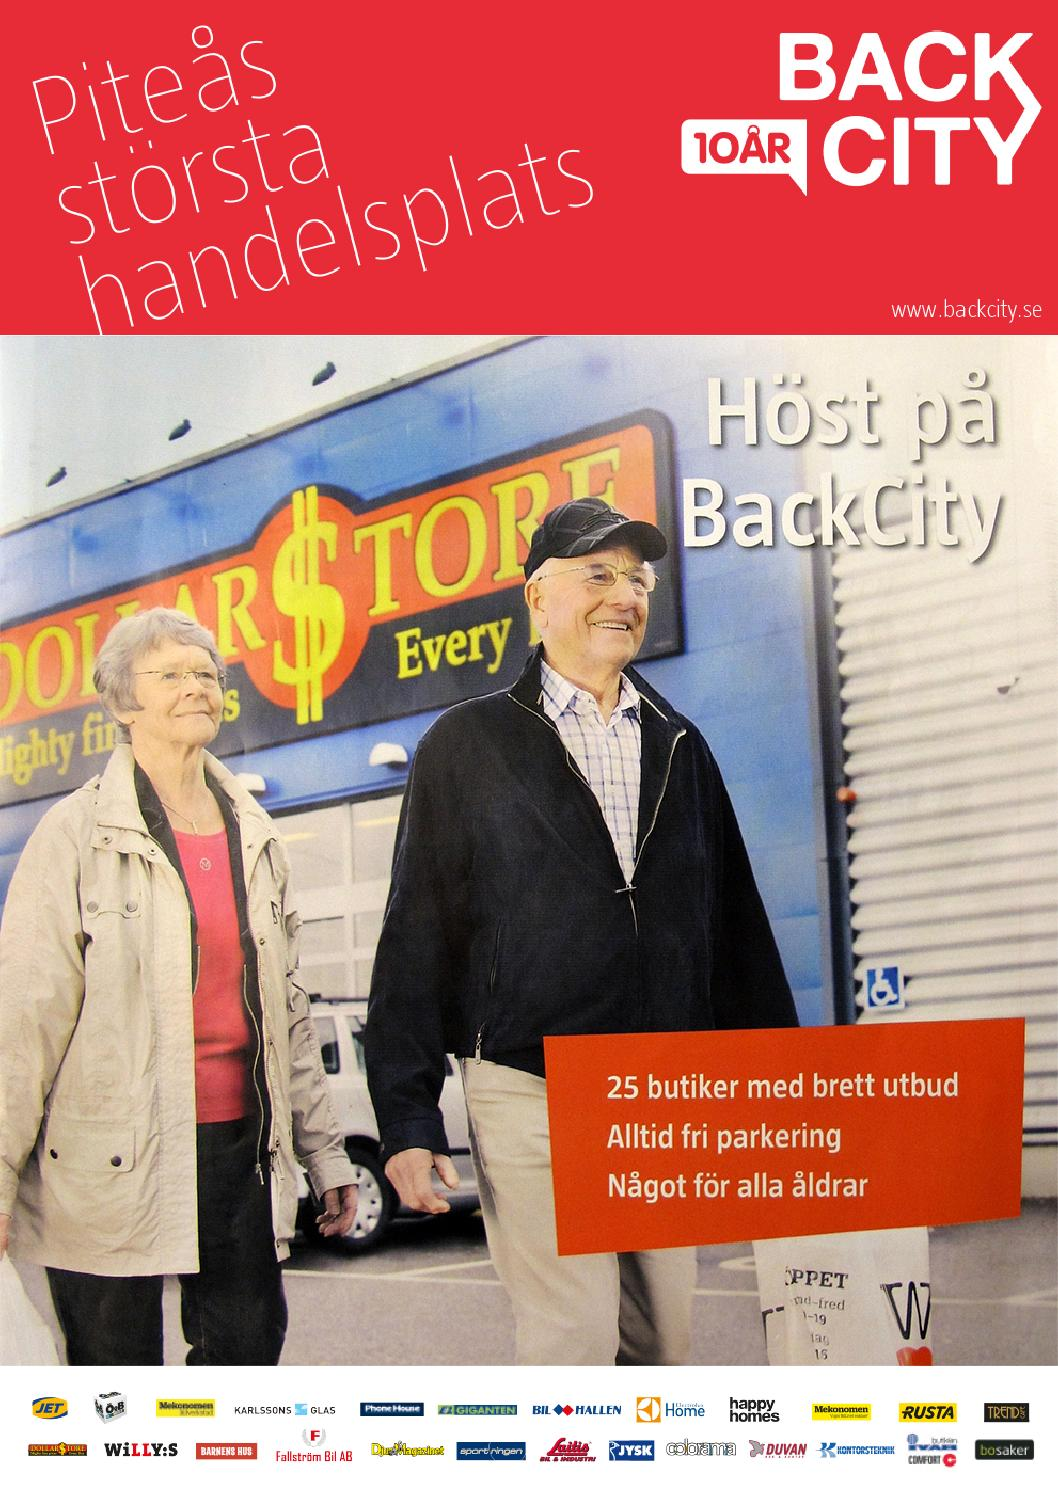 Back city 10år by piteå tidningen piteå tidningen   issuu